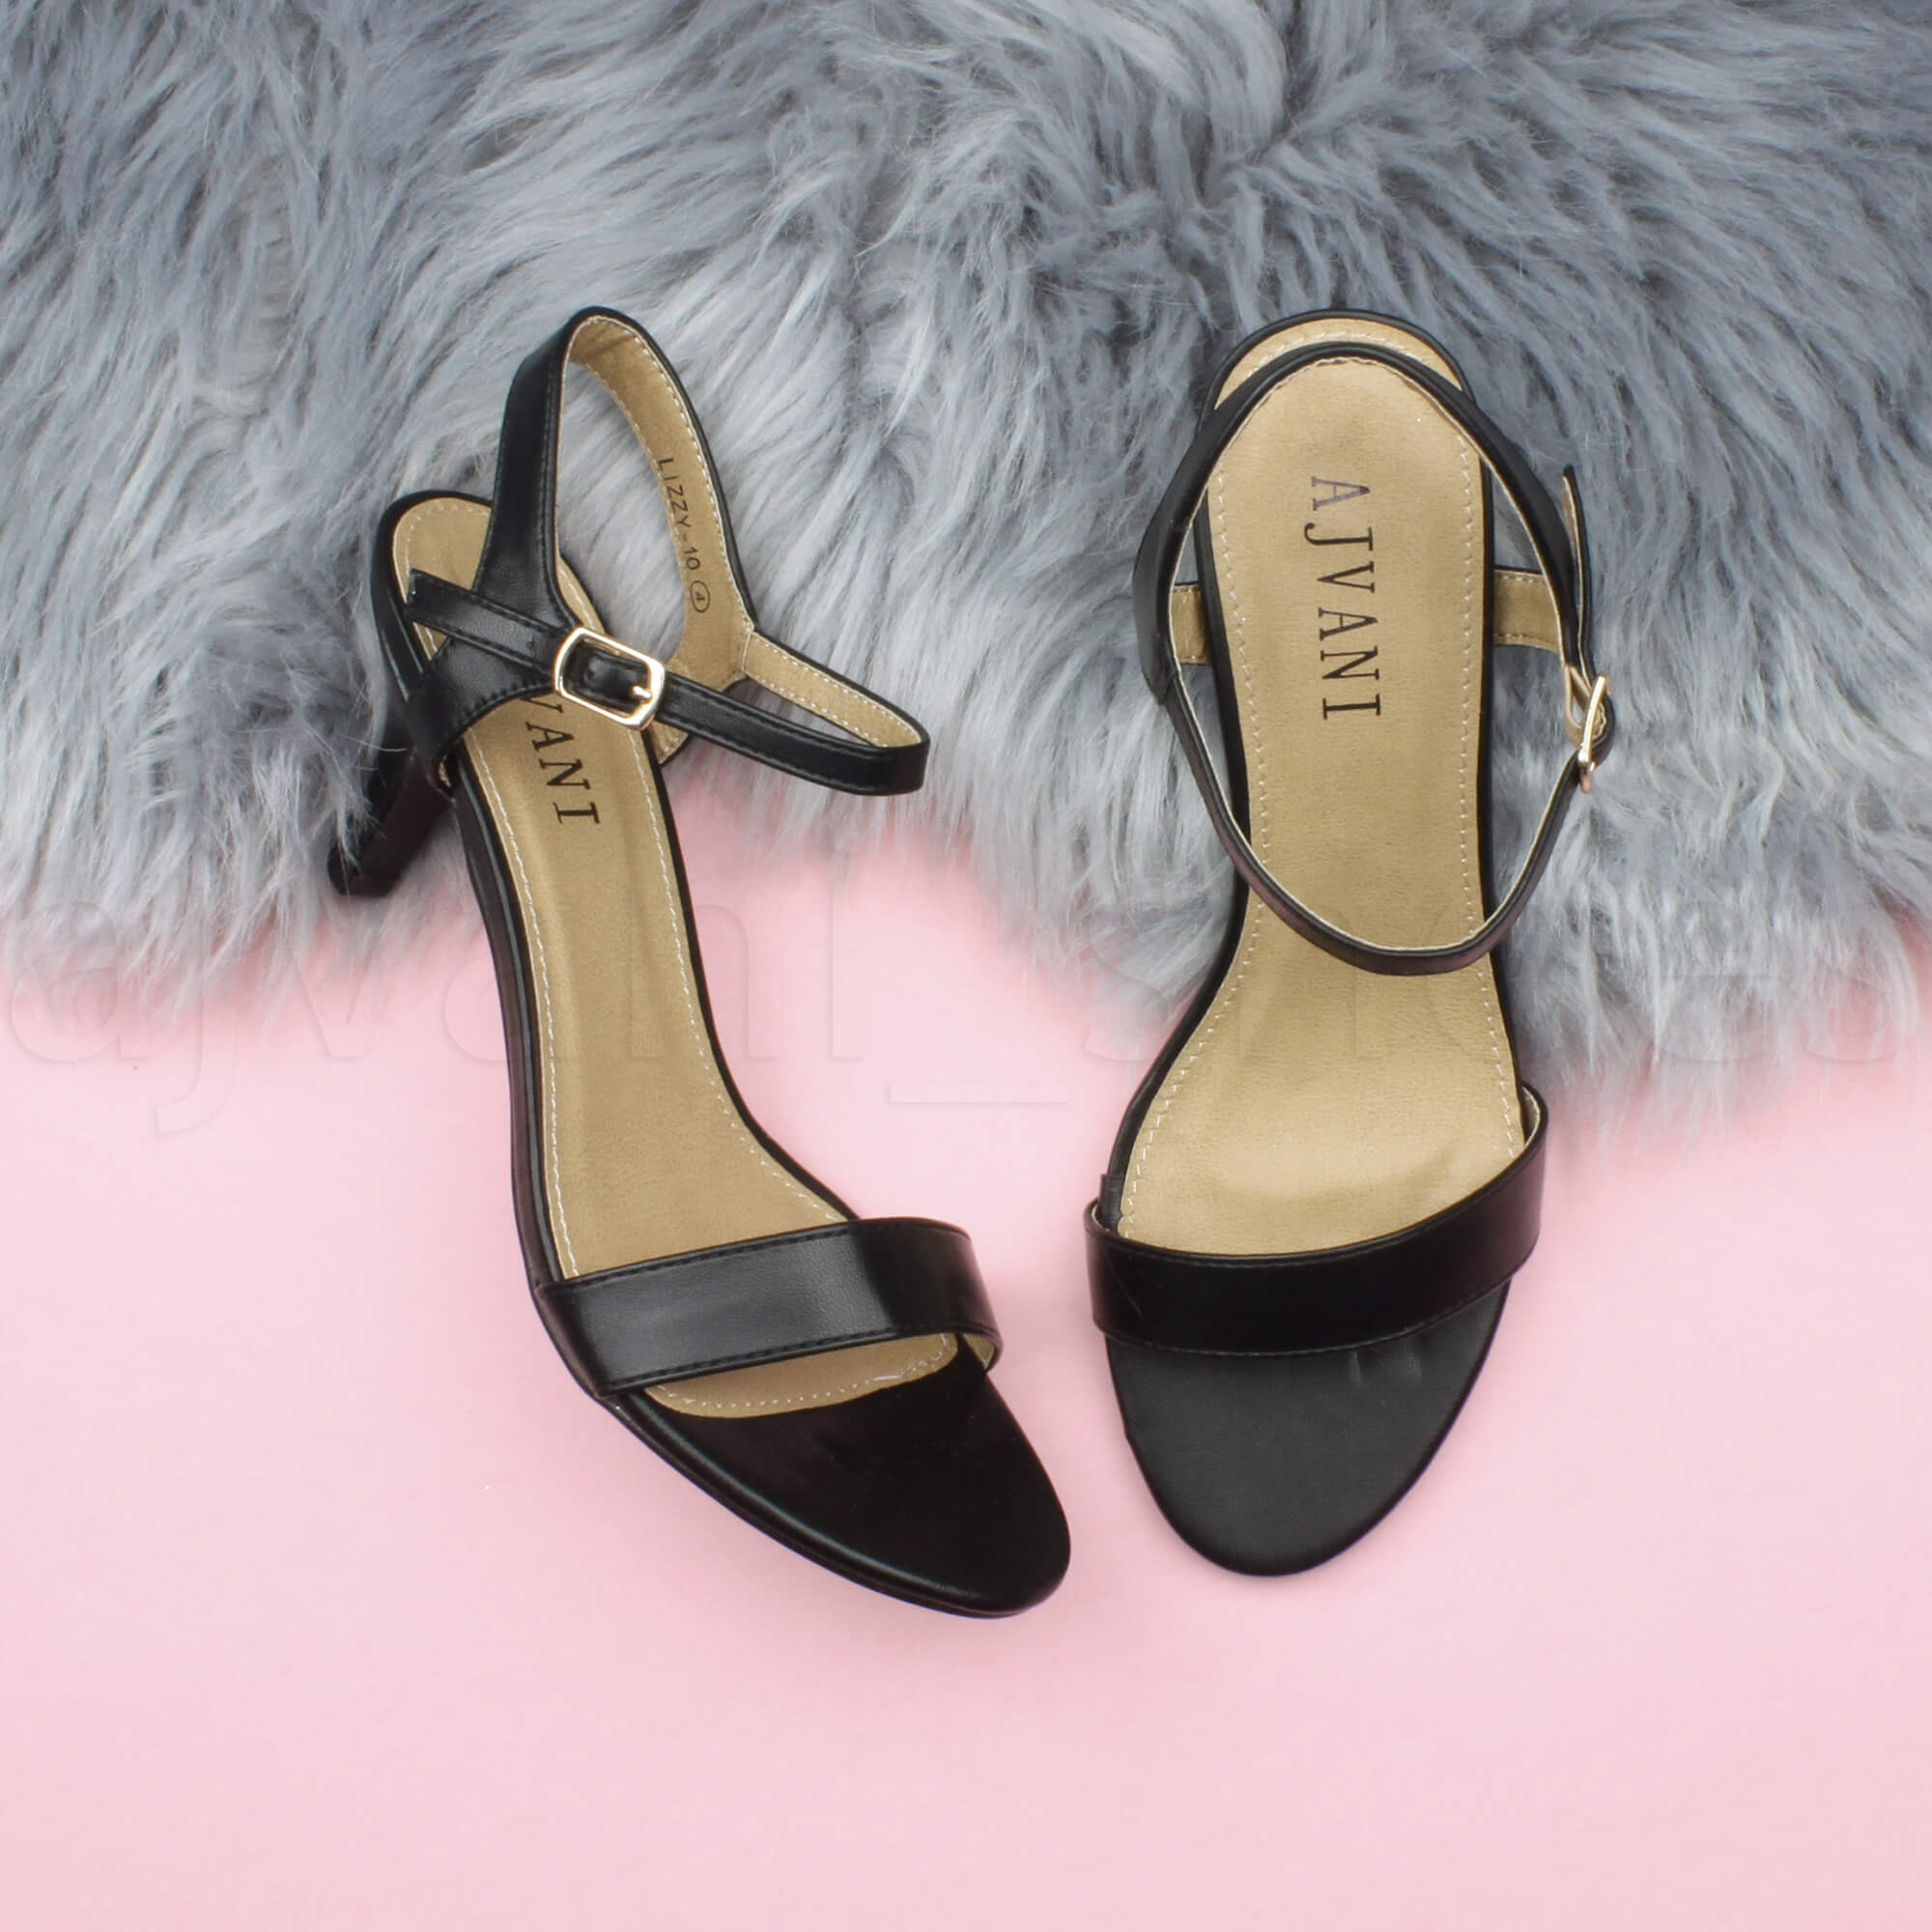 WOMENS-LADIES-HIGH-HEEL-BUCKLE-STRAPPY-BASIC-BARELY-THERE-SANDALS-SHOES-SIZE thumbnail 5